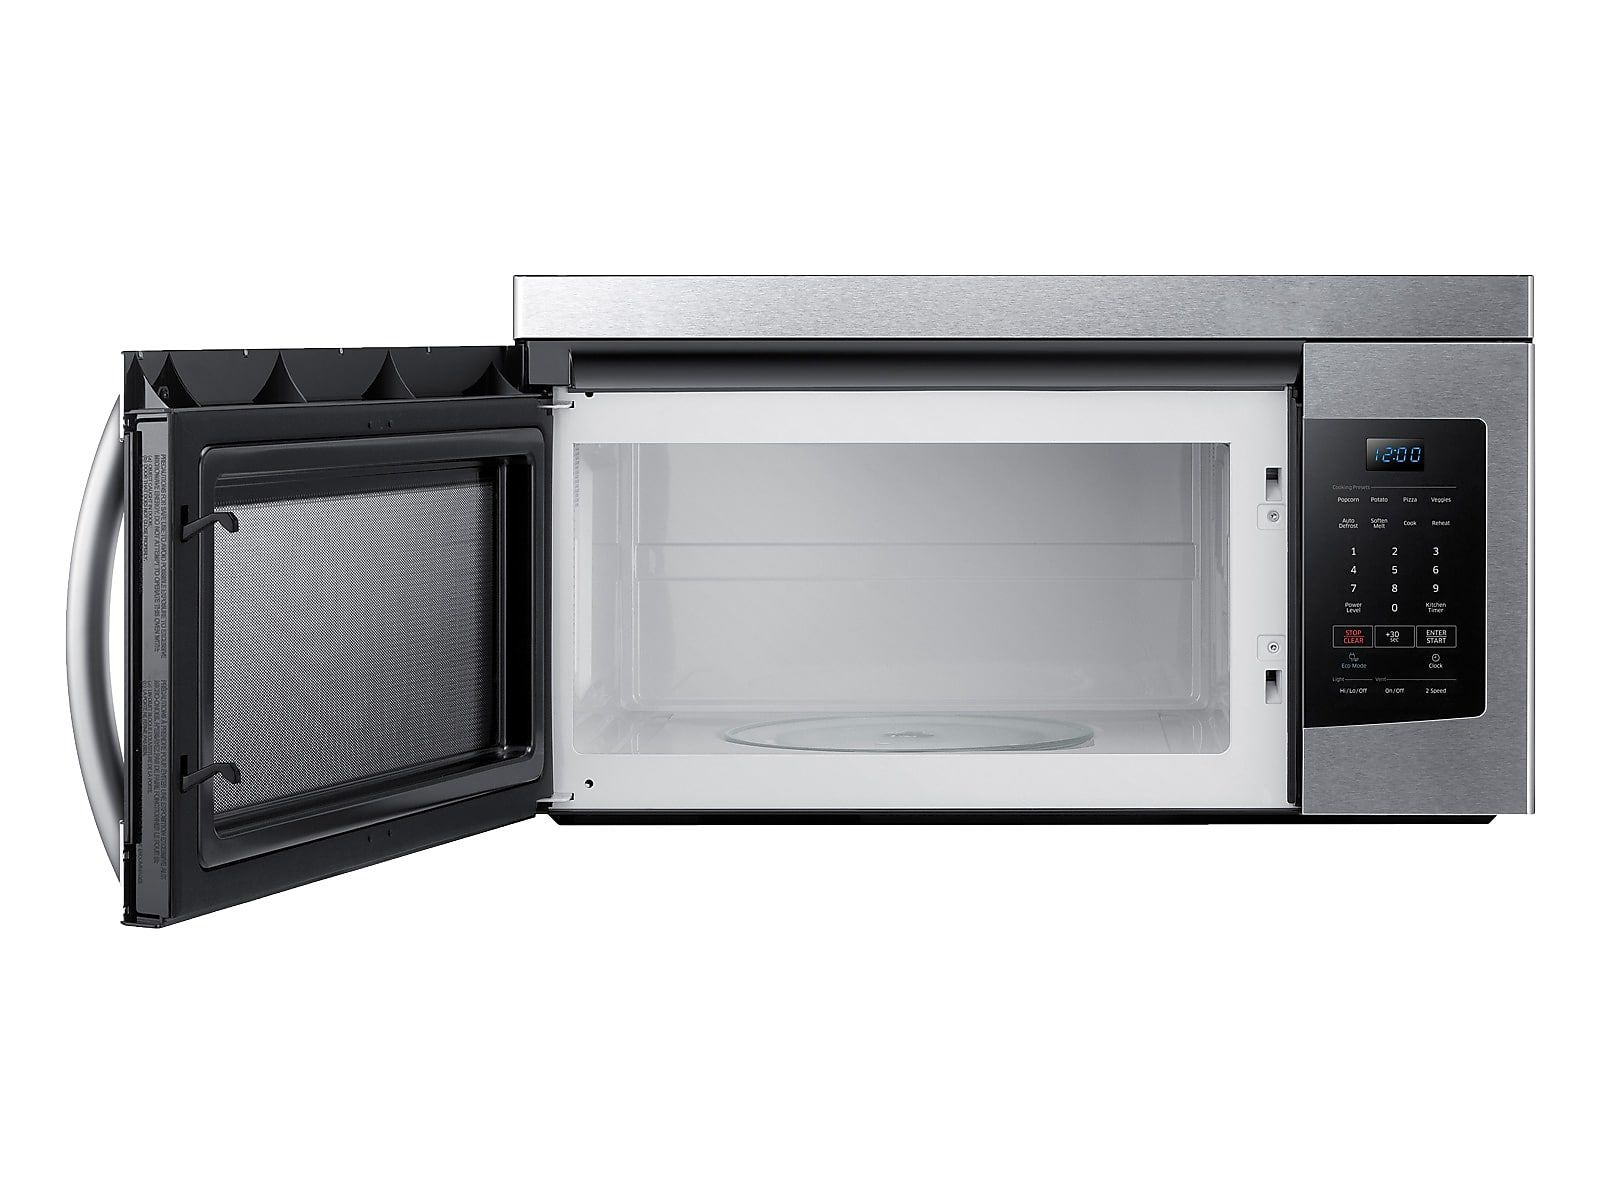 Samsung 1 6 Cu Ft Over The Range Microwave In Stainless Steel